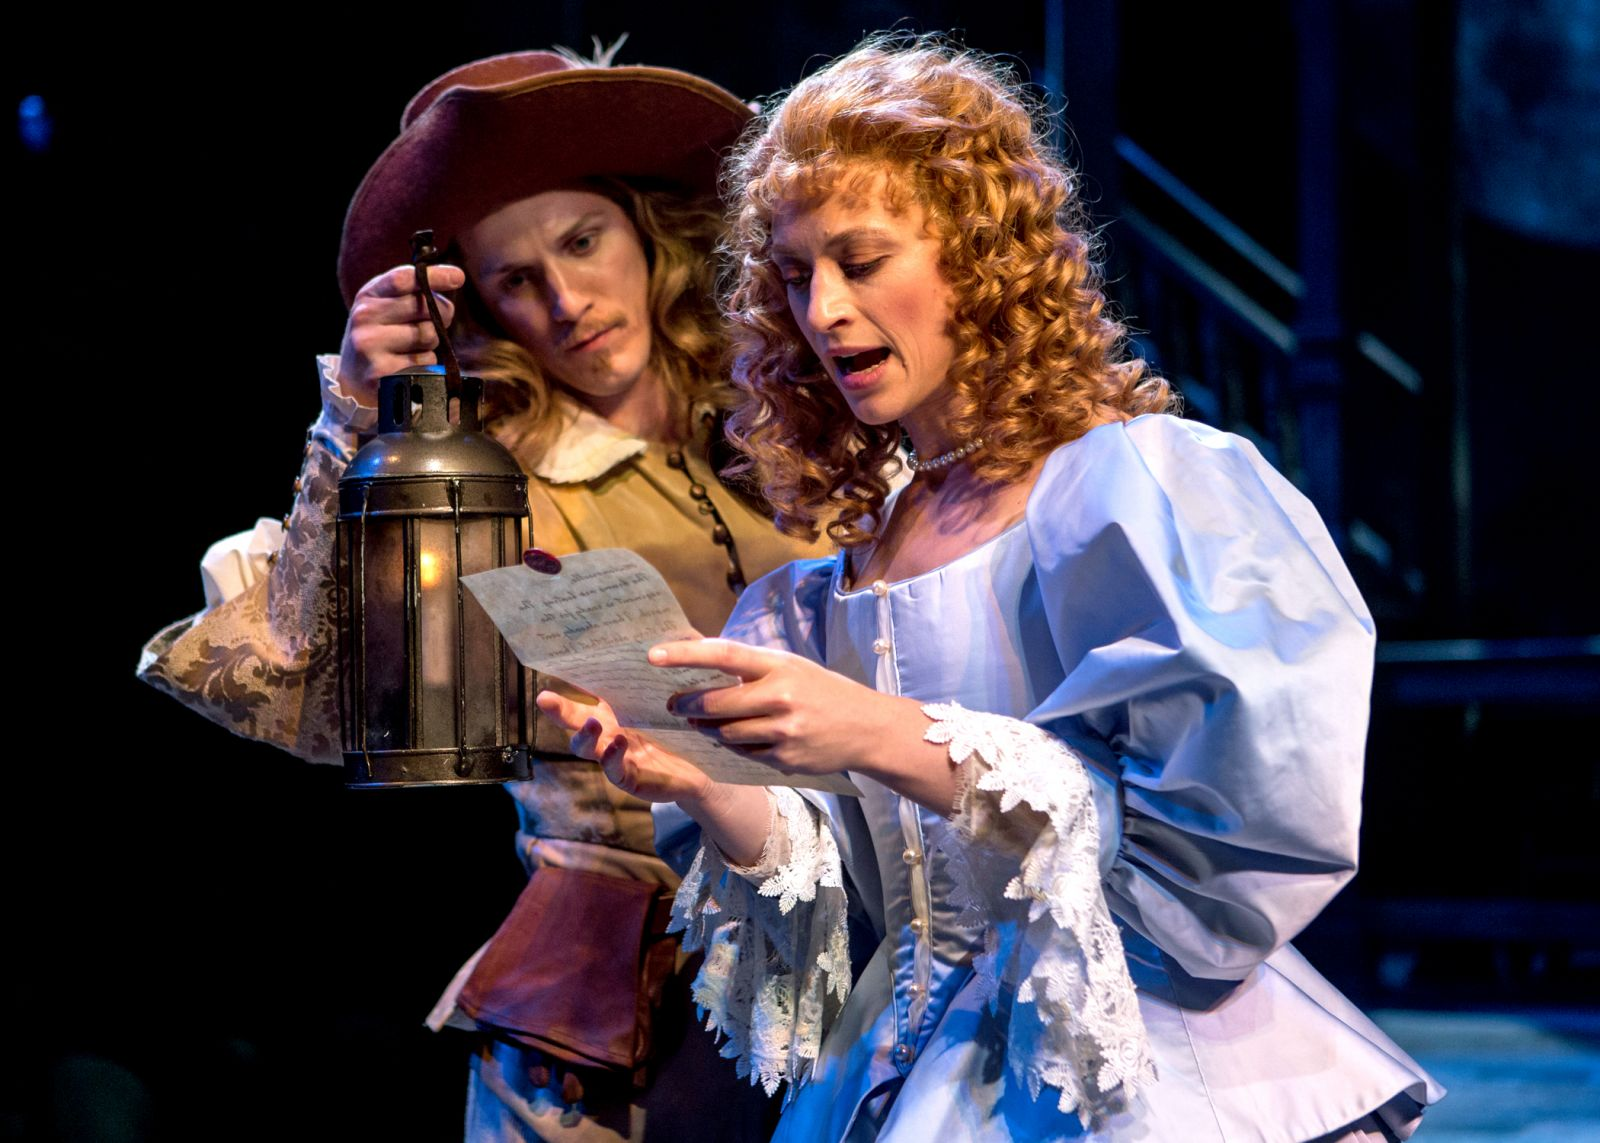 an analysis of cyrano and roxanne in cyrano de bergerac Character profiles cyrano de bergerac cyrano is a brilliant poet, swordsman, philosopher, and musician courageous, honorable, and witty, he is the hero of the play.